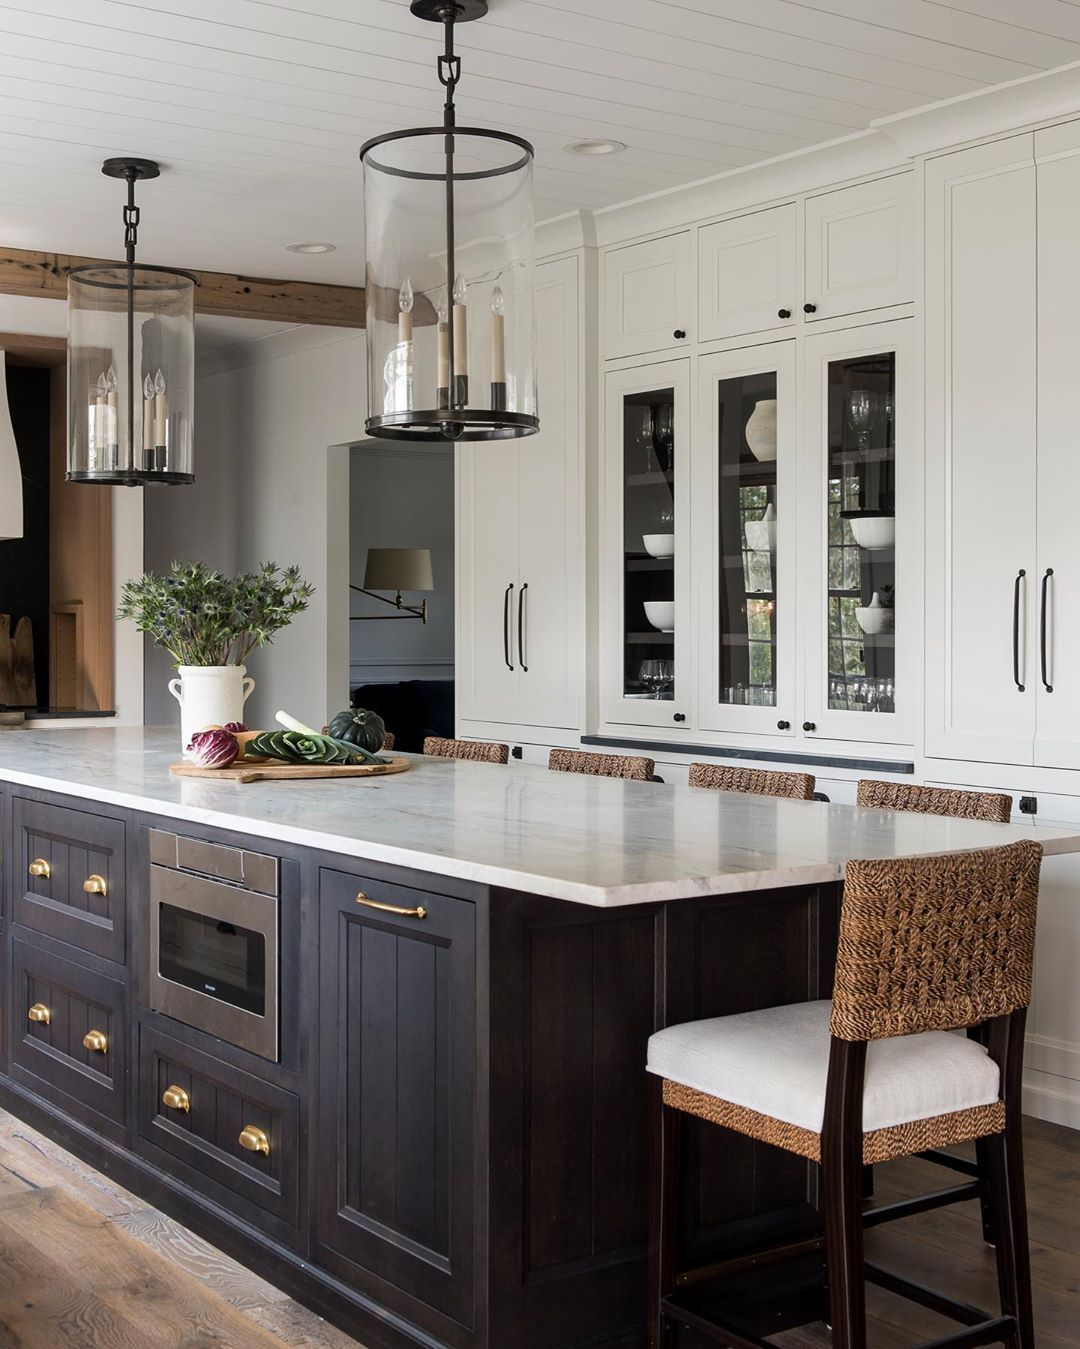 Whittney Parkinson Design On Instagram Tailor Made For The Client Who Loves Her Some High Contrast Kitchen In 2020 Home Kitchens Kitchen Renovation Kitchen Remodel